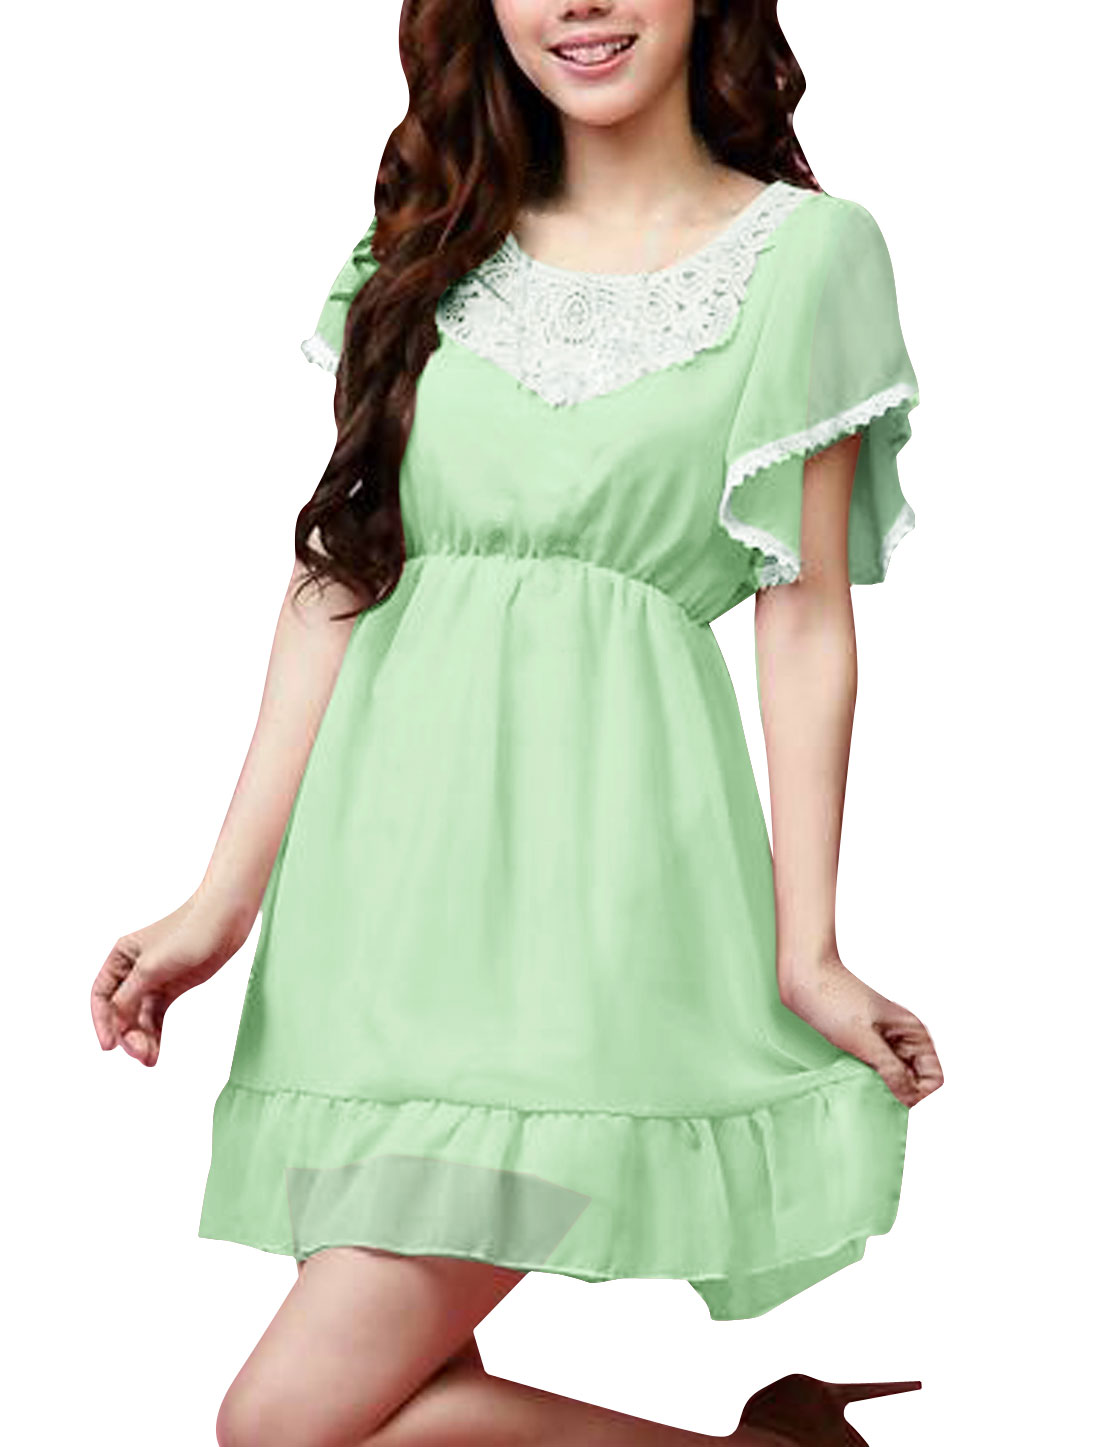 Woman Chic Accent Scoop Neck Short Flare Sleeve Light Green Mini Dress M